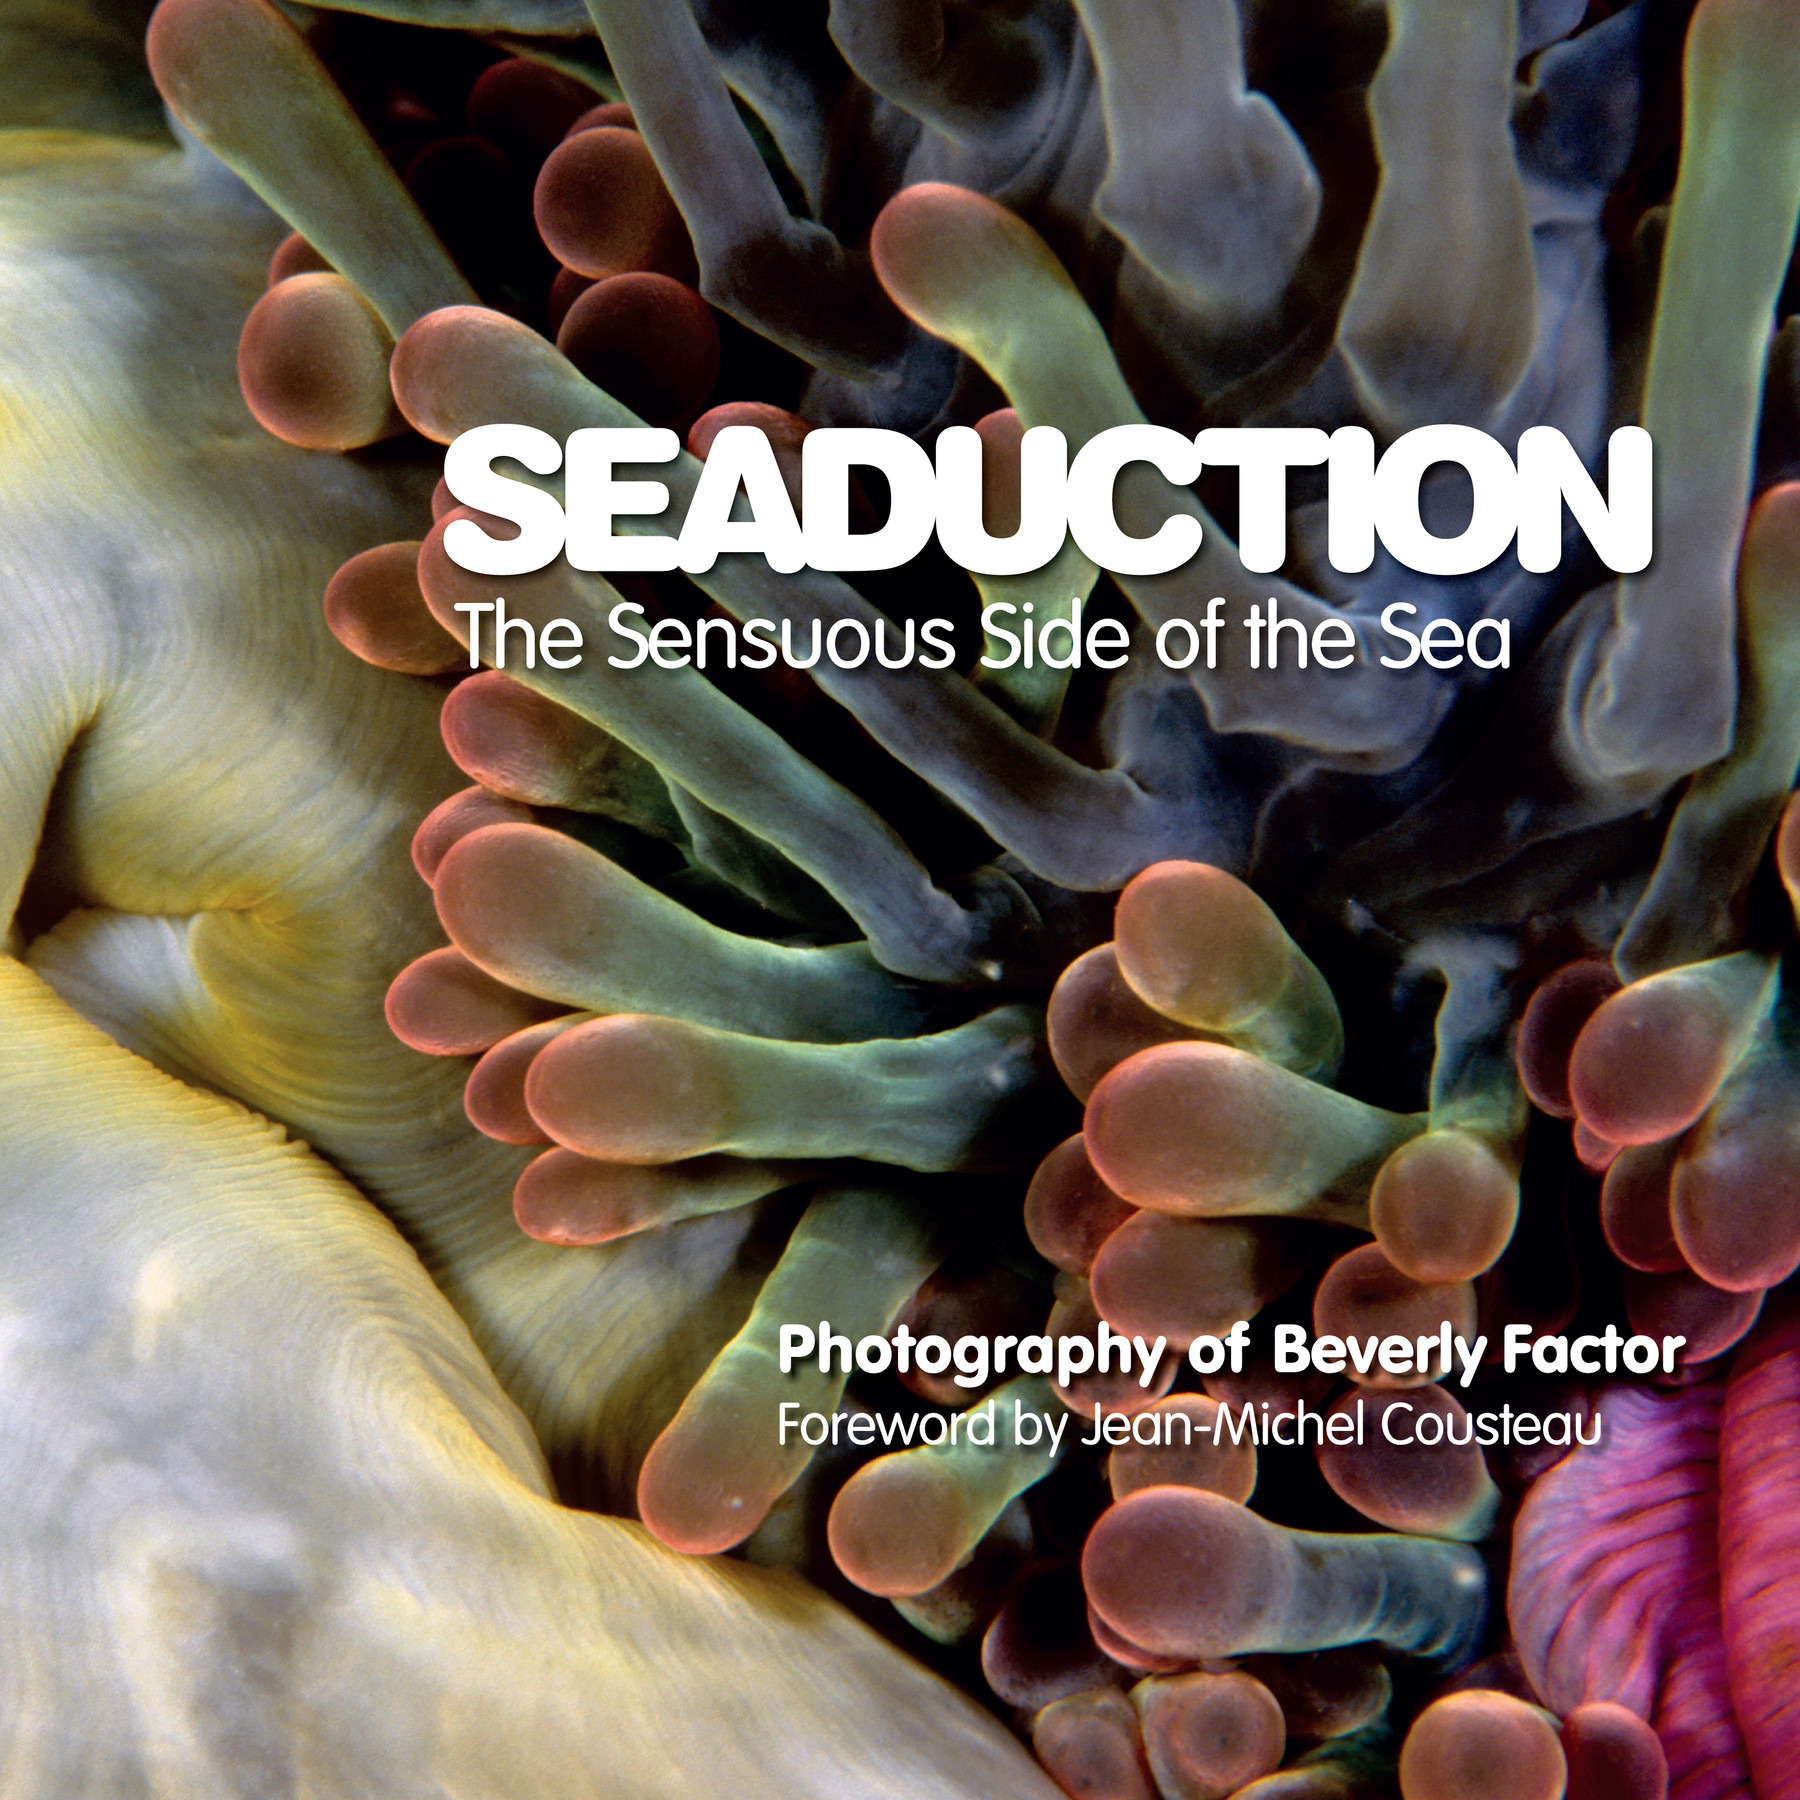 Seaduction01 bfactor